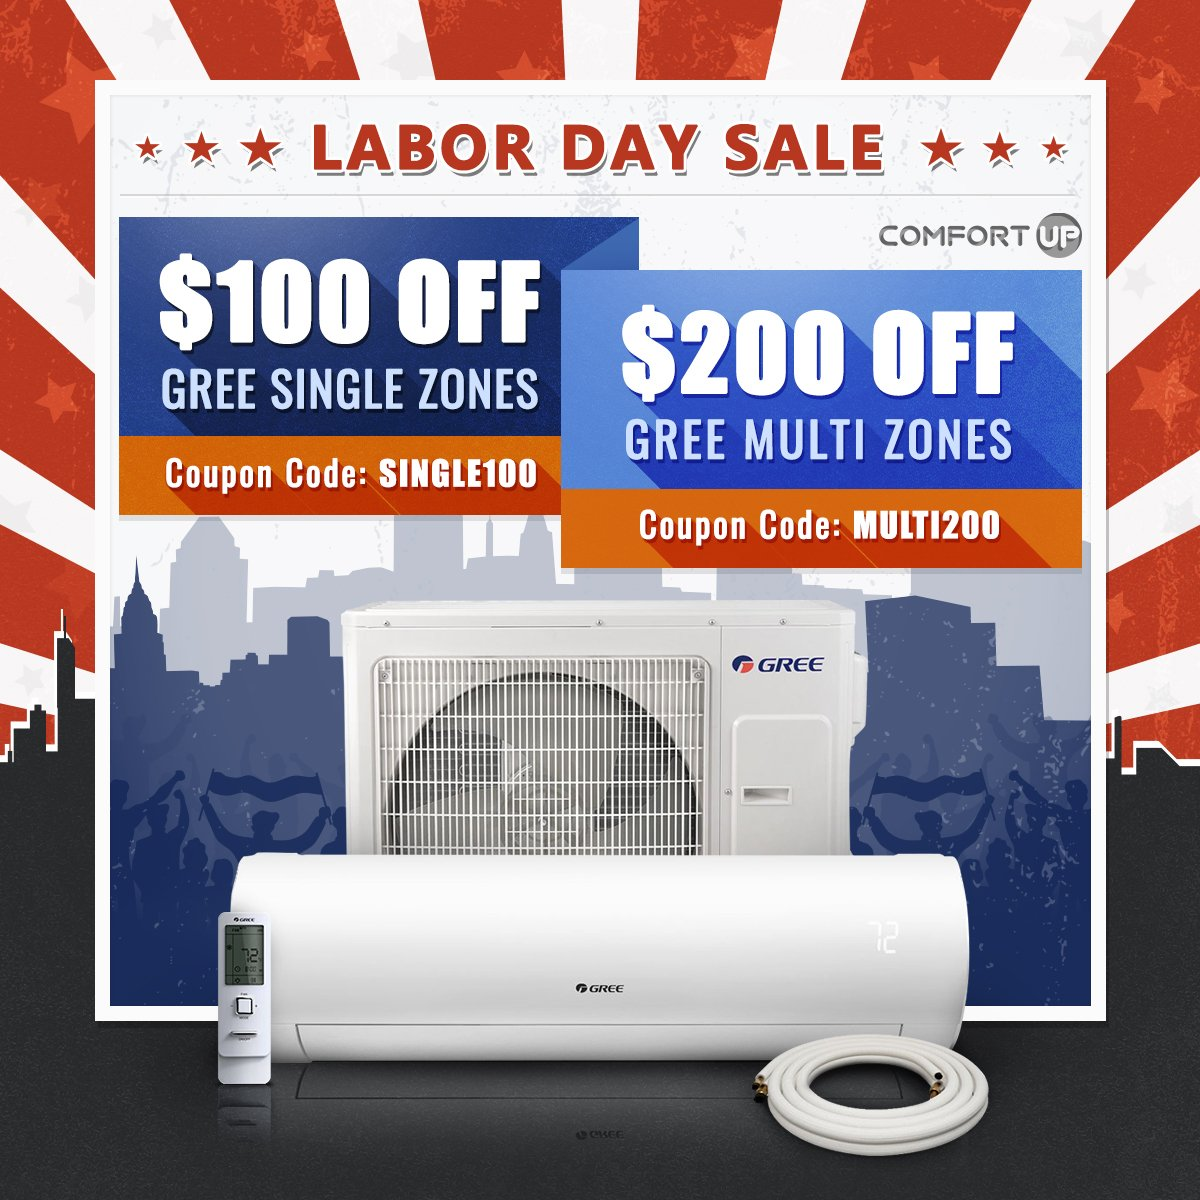 Comfortup: Your Labor Day Sale STARTS NOW!   Milled